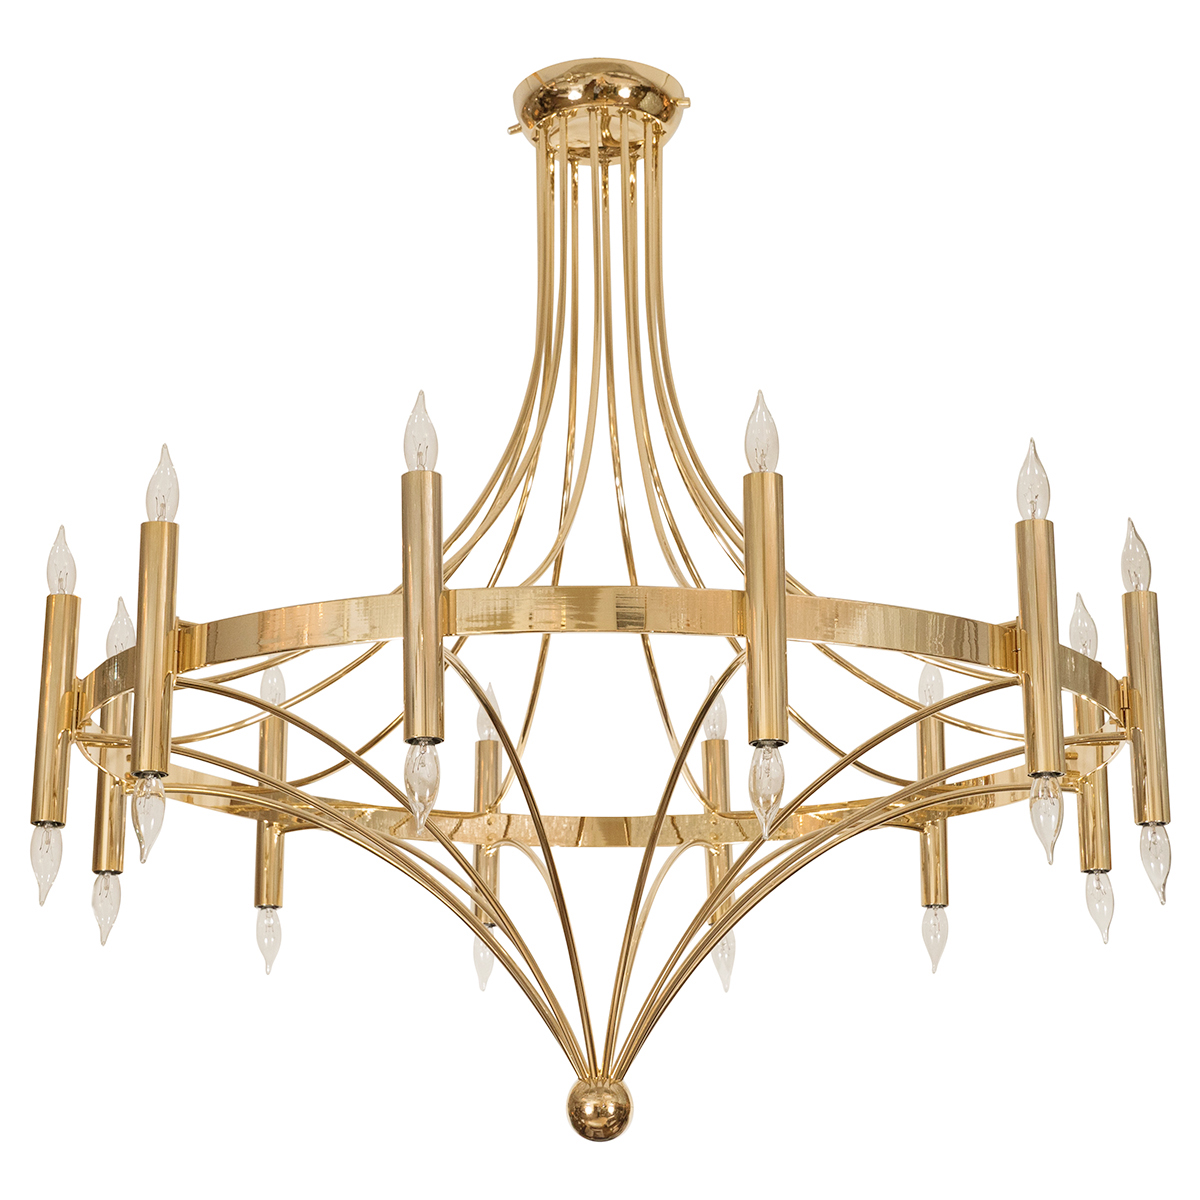 Brass montgolfier style chandelier chandeliers pendants john brass montgolfier style chandelier chandeliers pendants john salibello aloadofball Choice Image